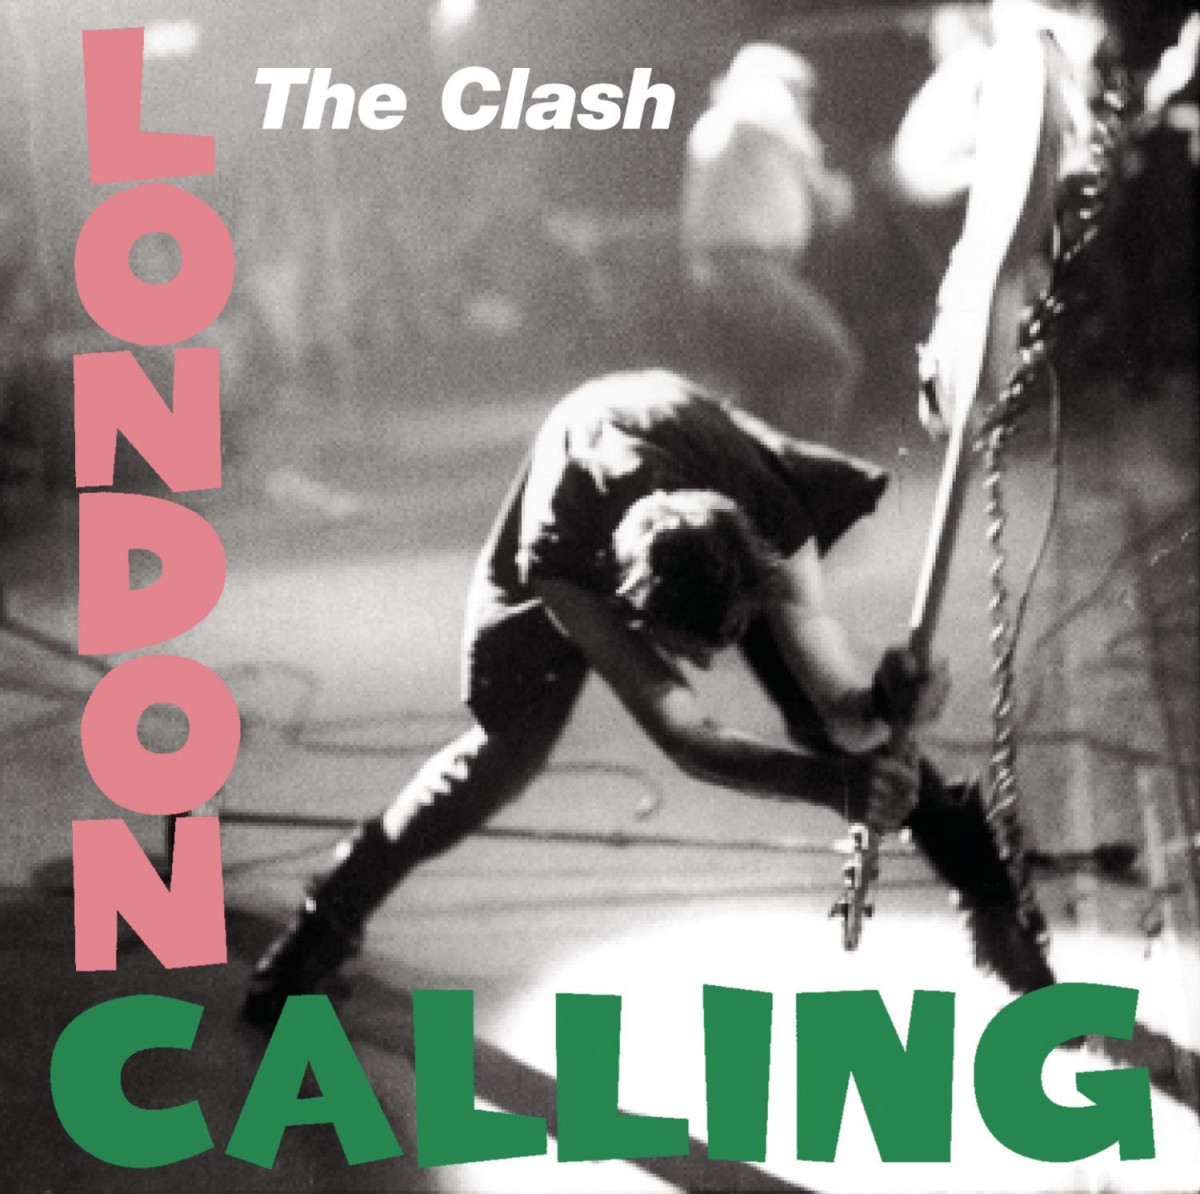 The Clash, London Calling